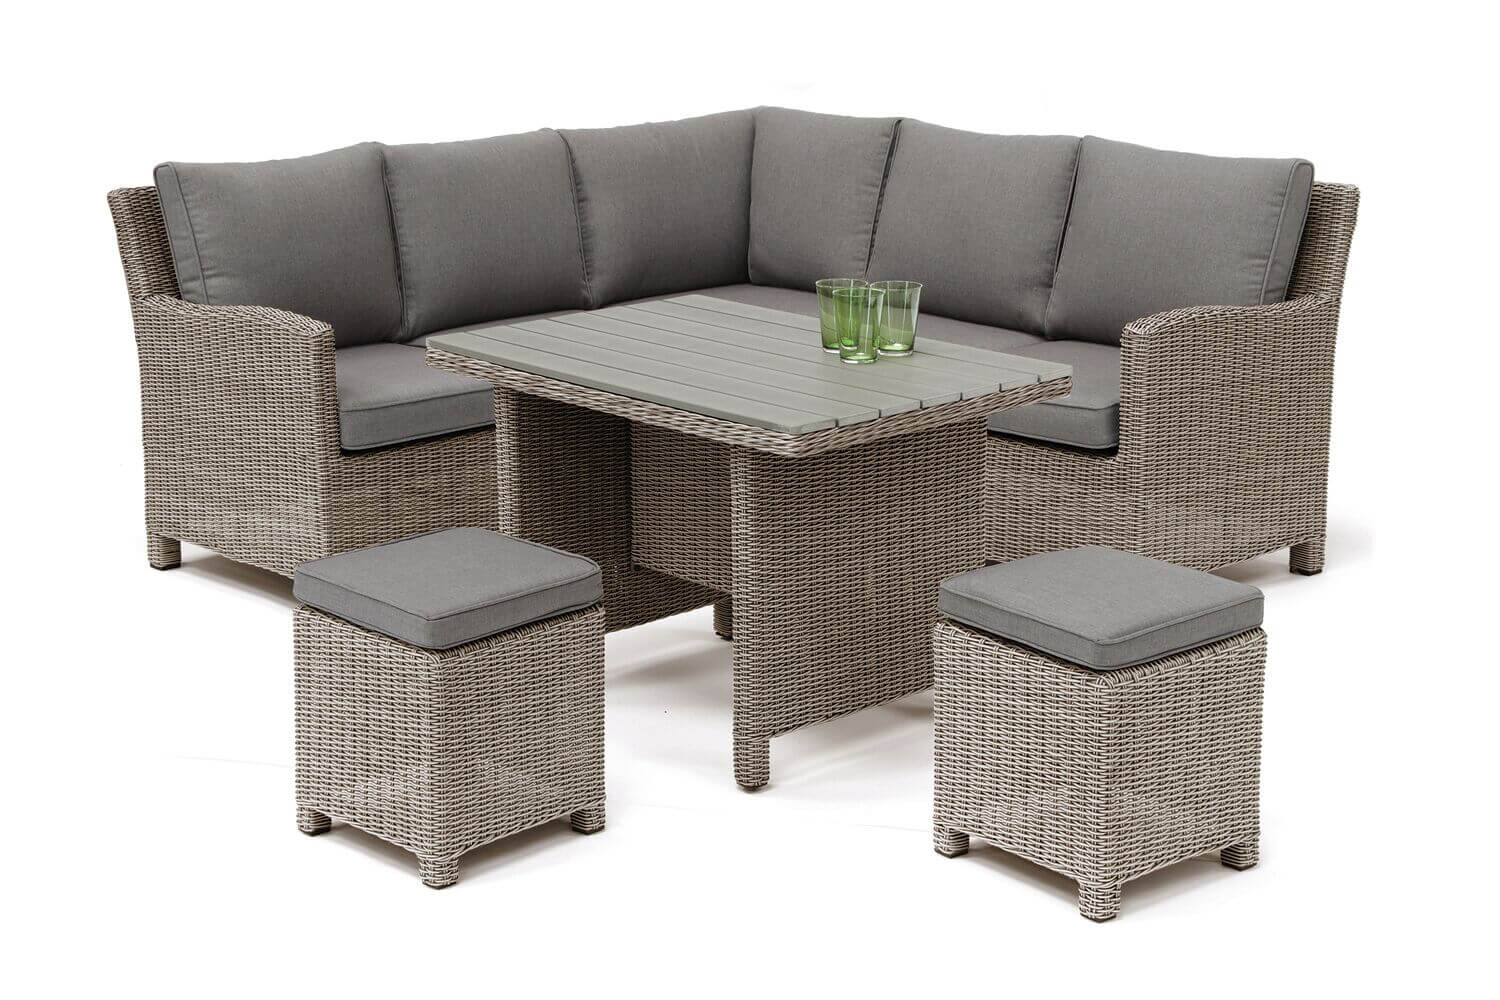 Kettler Palma Mini Corner Dining Set in Rattan / Taupe with Polywood Table